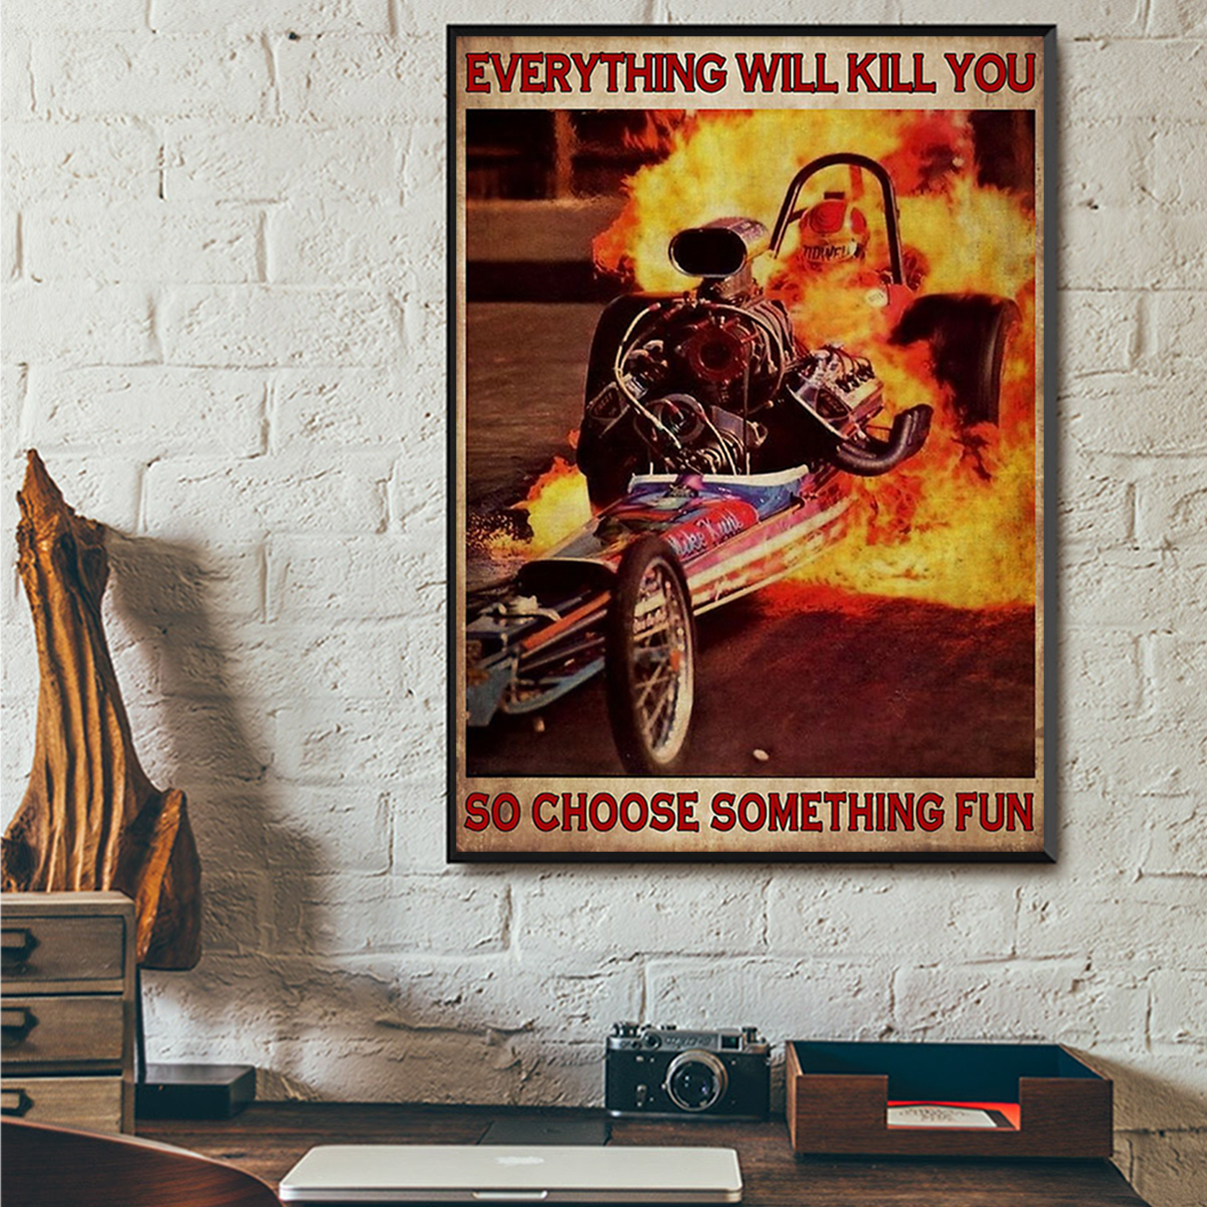 Fire drag racing everything will kill you so choose something fun poster A2